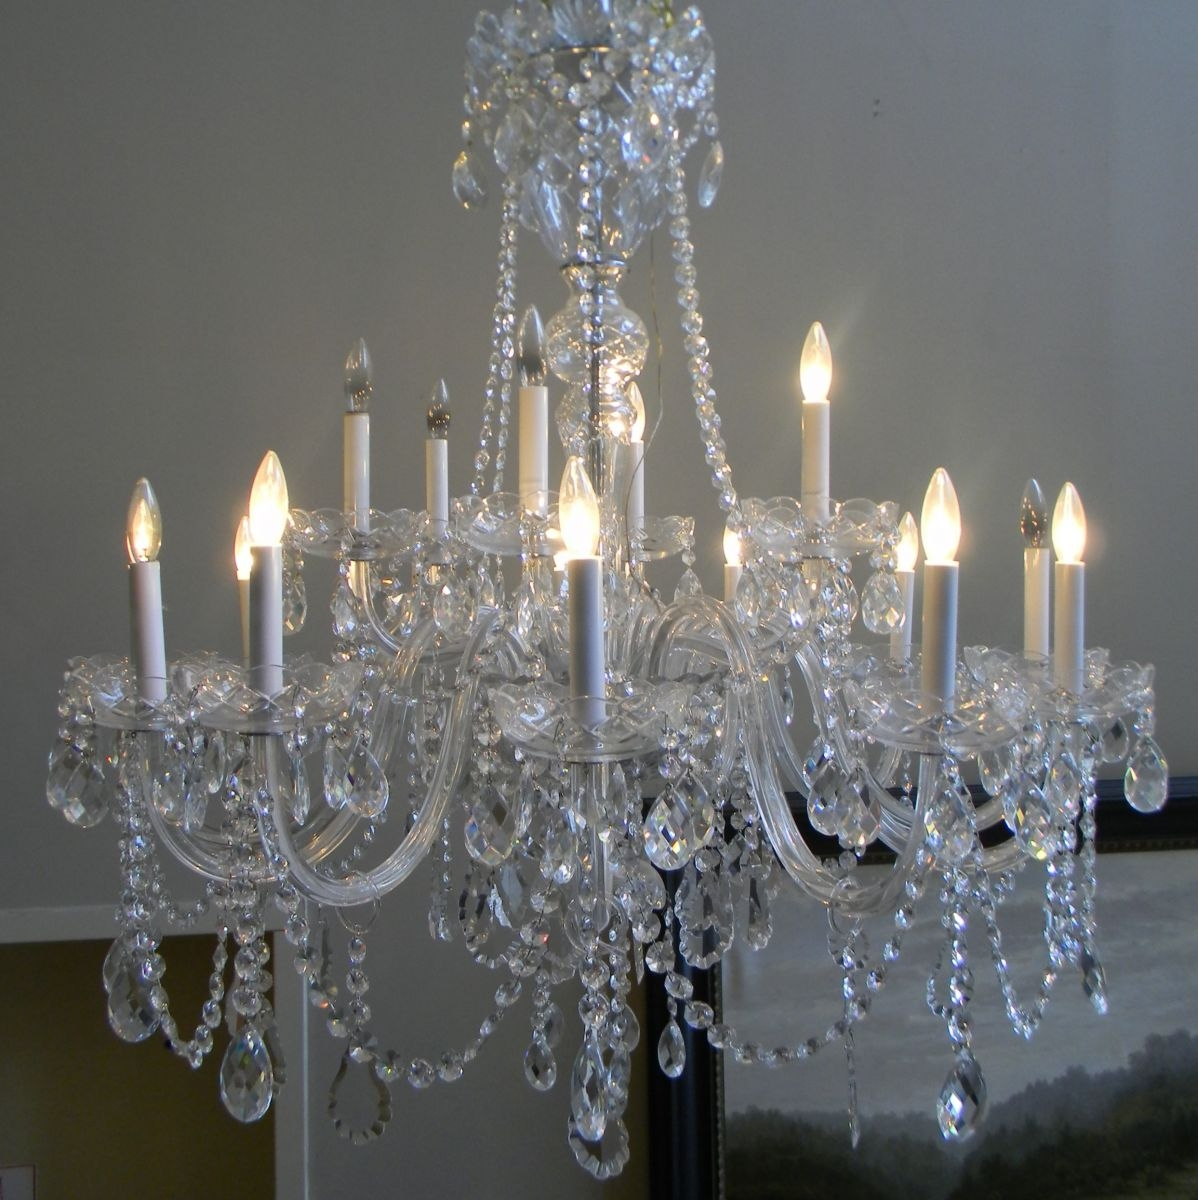 Gas Lamp Antiques Regarding Huge Crystal Chandelier (Image 6 of 15)